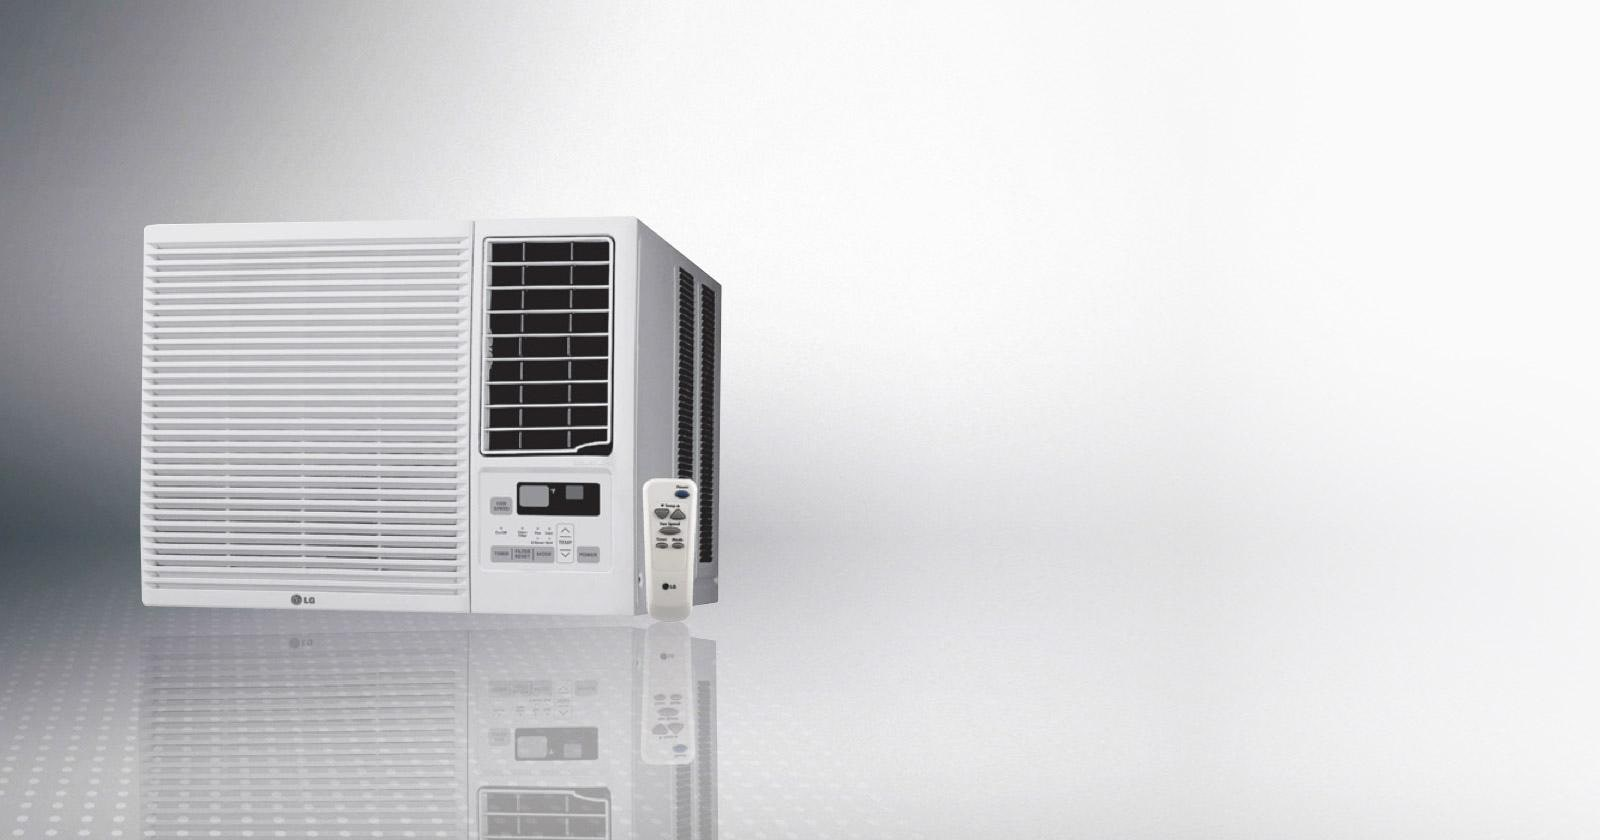 920rg Lg Air Conditioner Best Electronic 2017